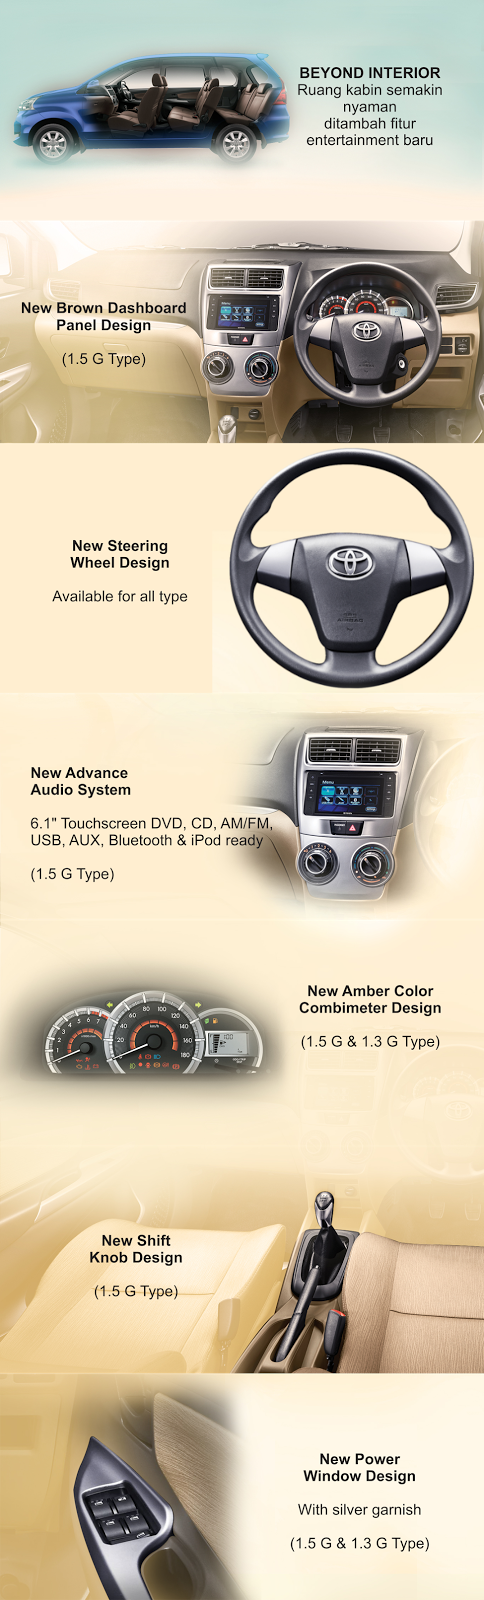 interior-mobil-grand-new-avanza